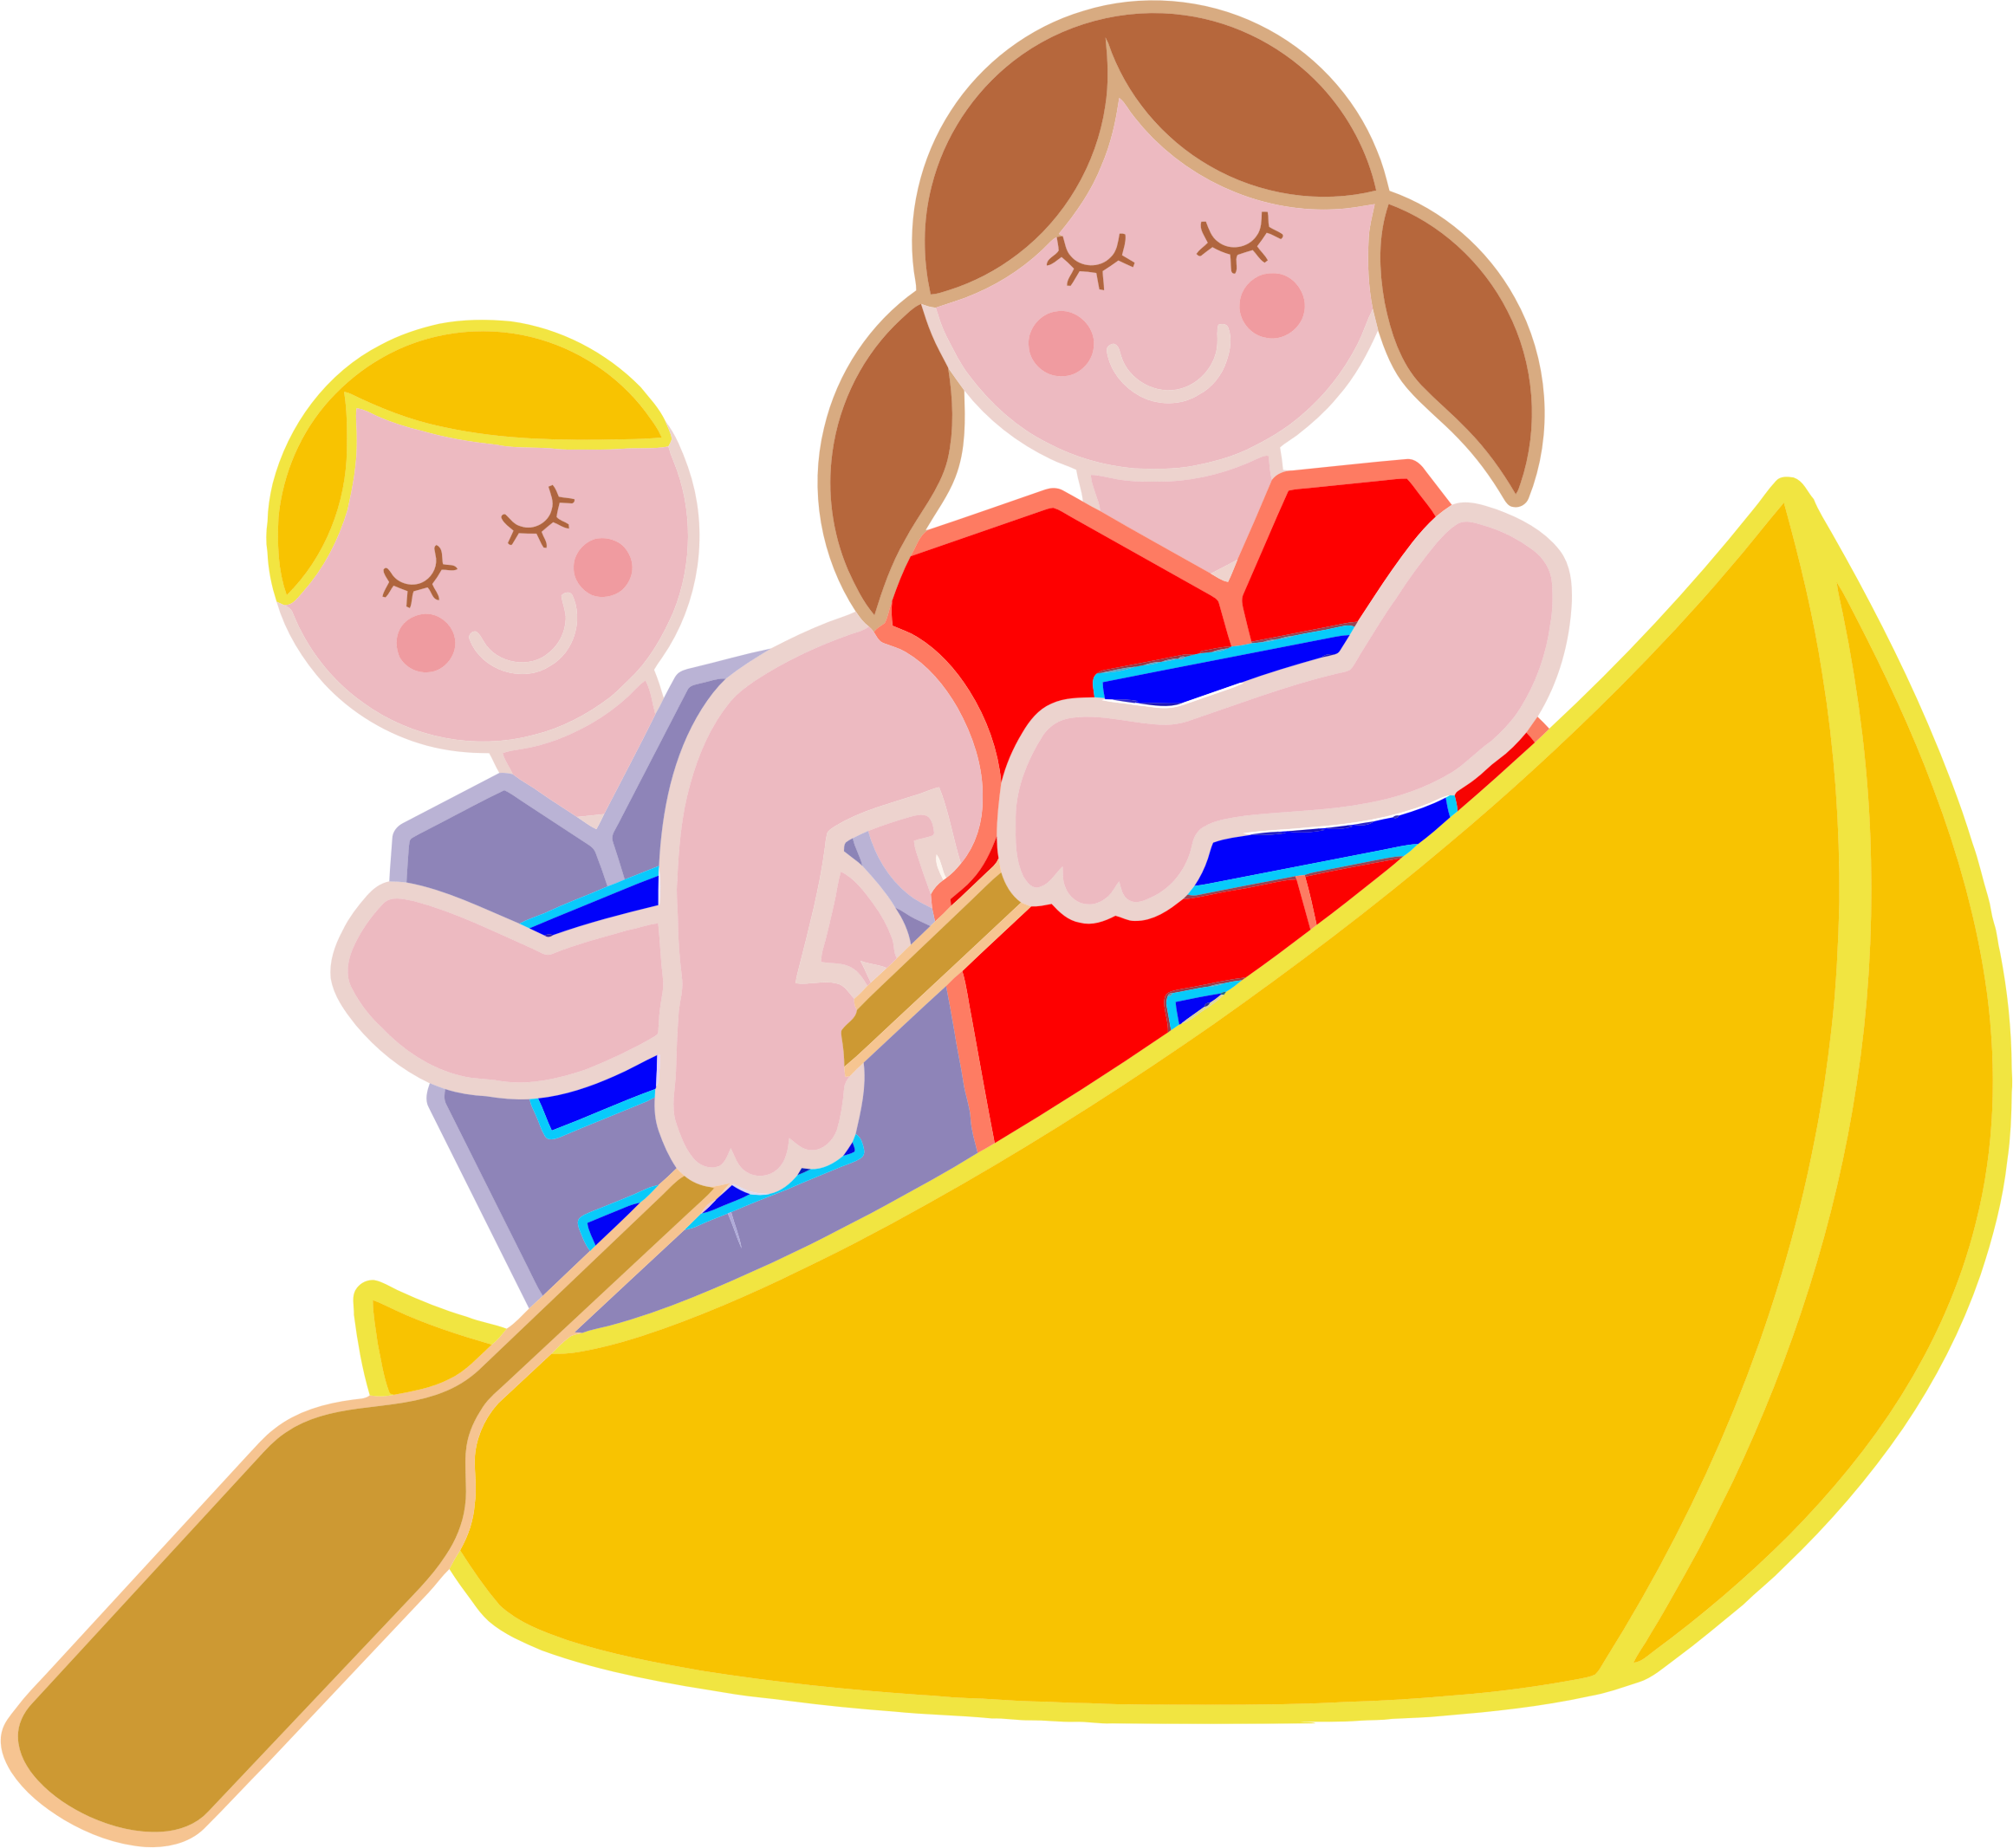 Girl and boy rowing. Kayaking clipart icon